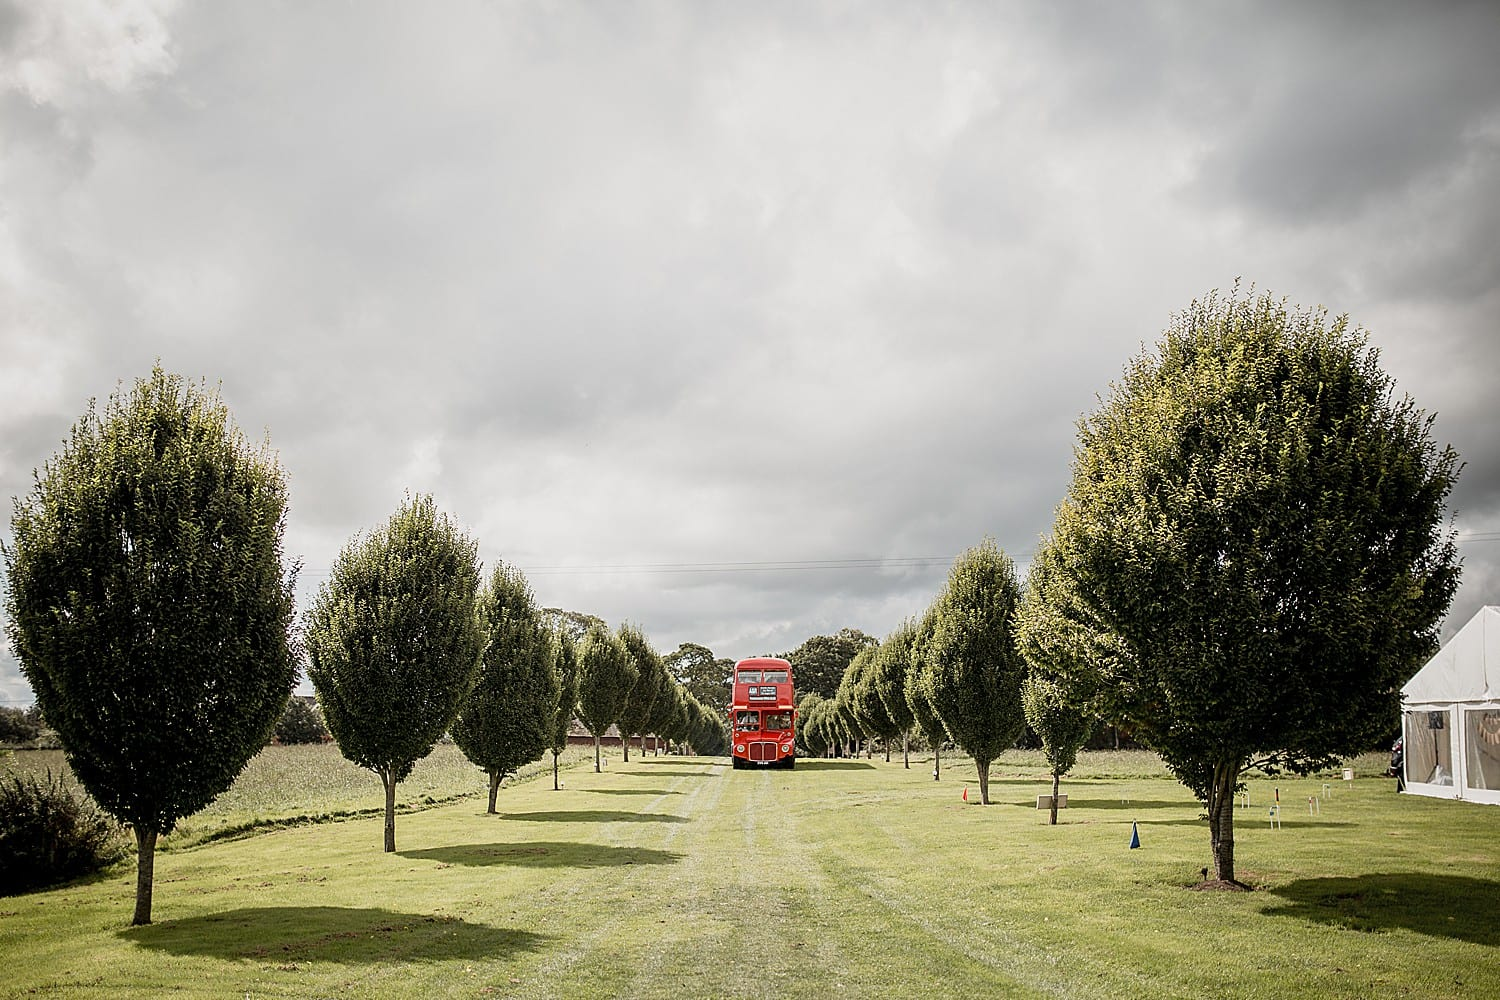 bus arriving at buddileigh farm